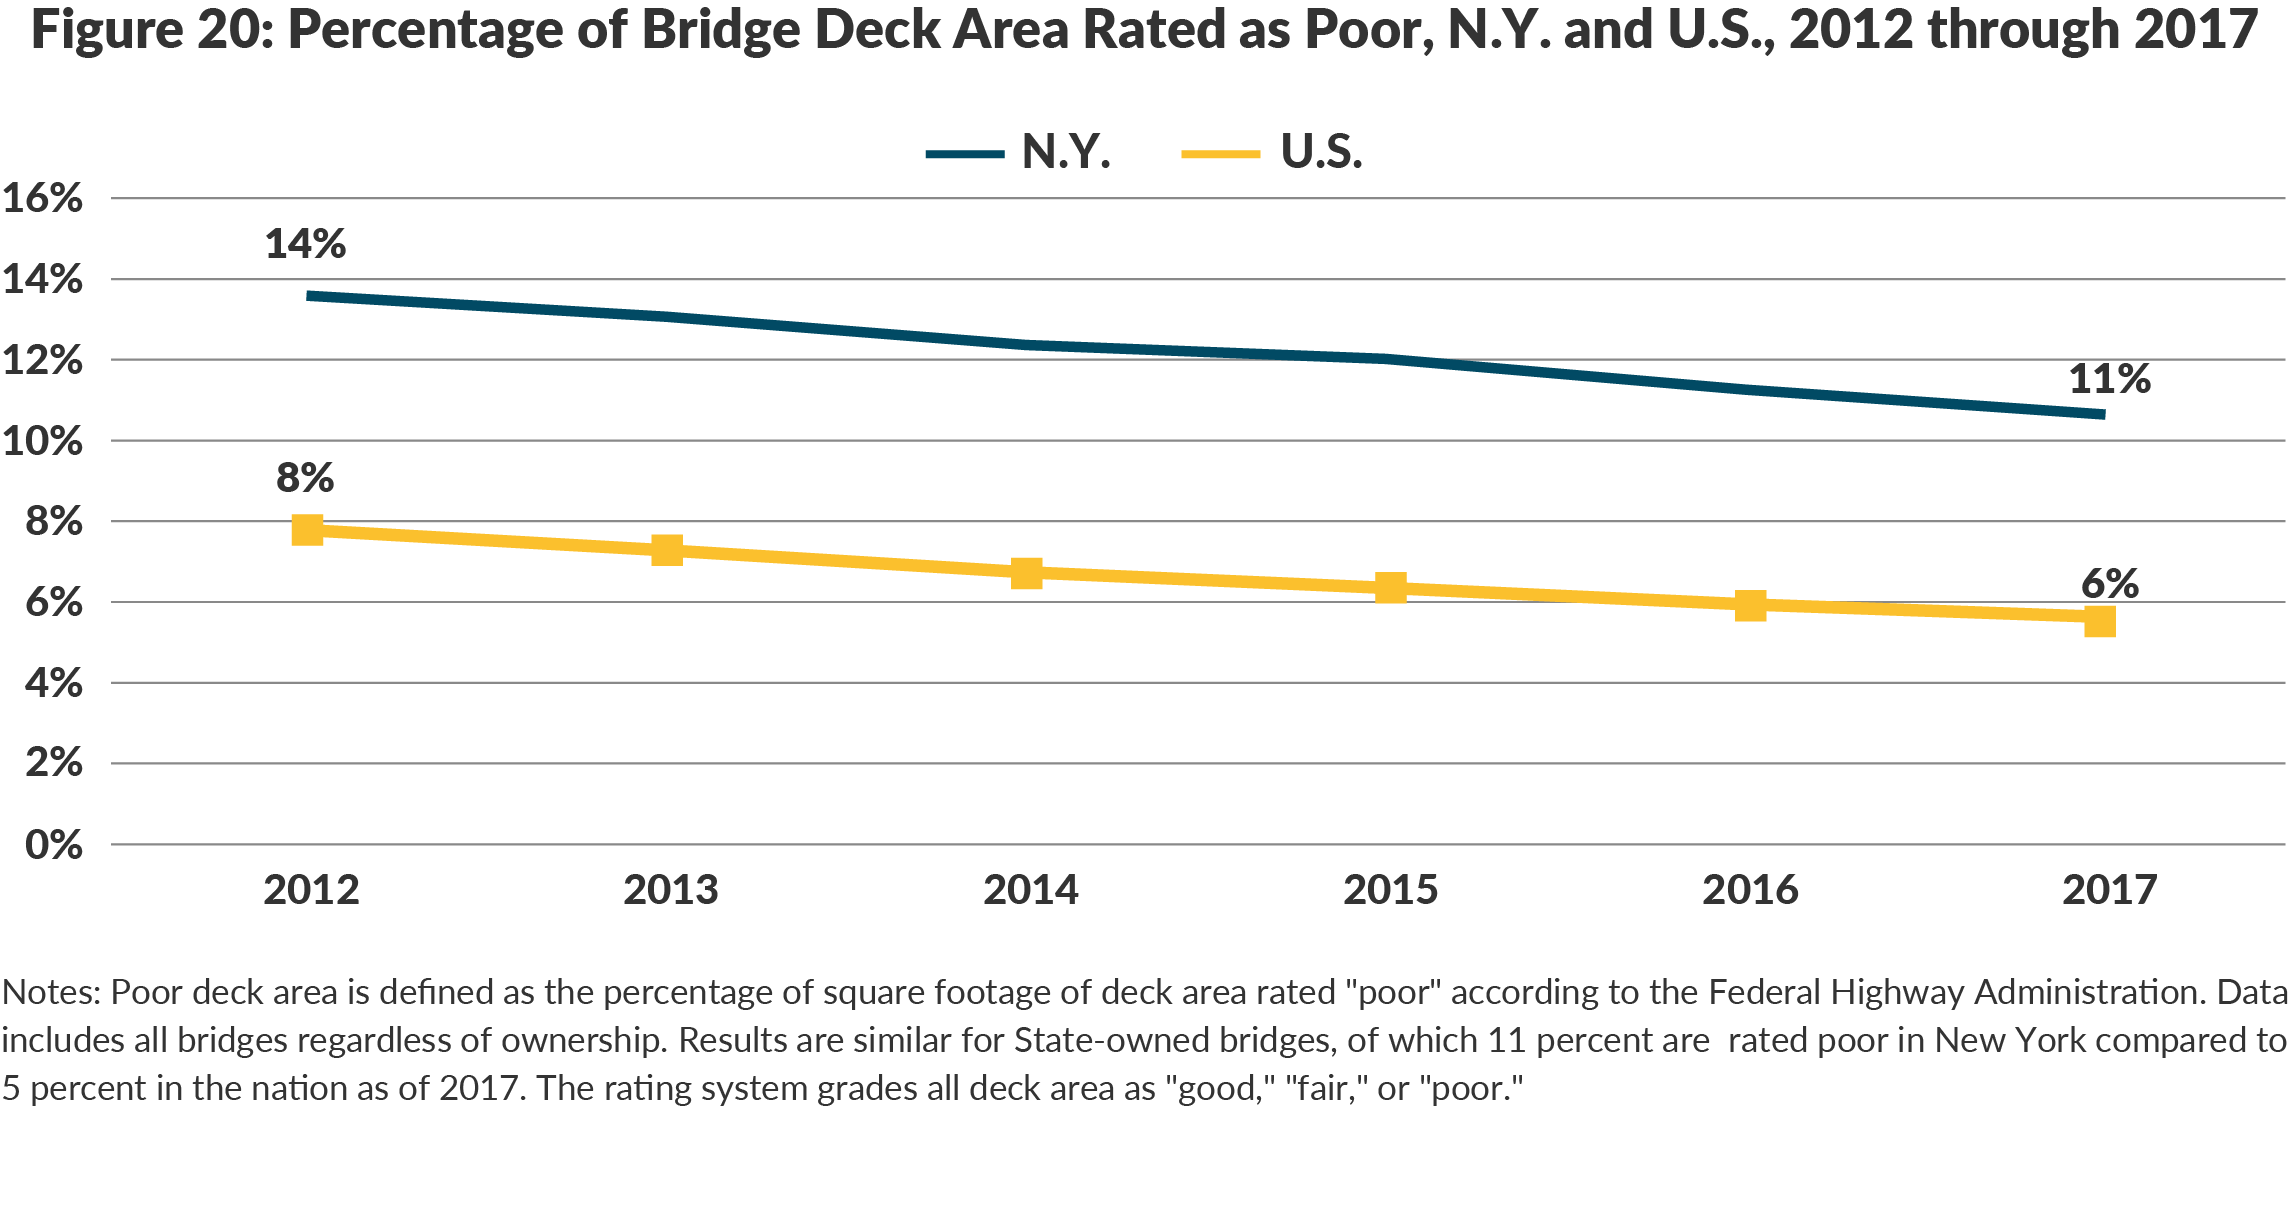 Figure 20: Percentage of Bridge Deck Area Rated as Poor, N.Y. and U.S., 2012 through 2017